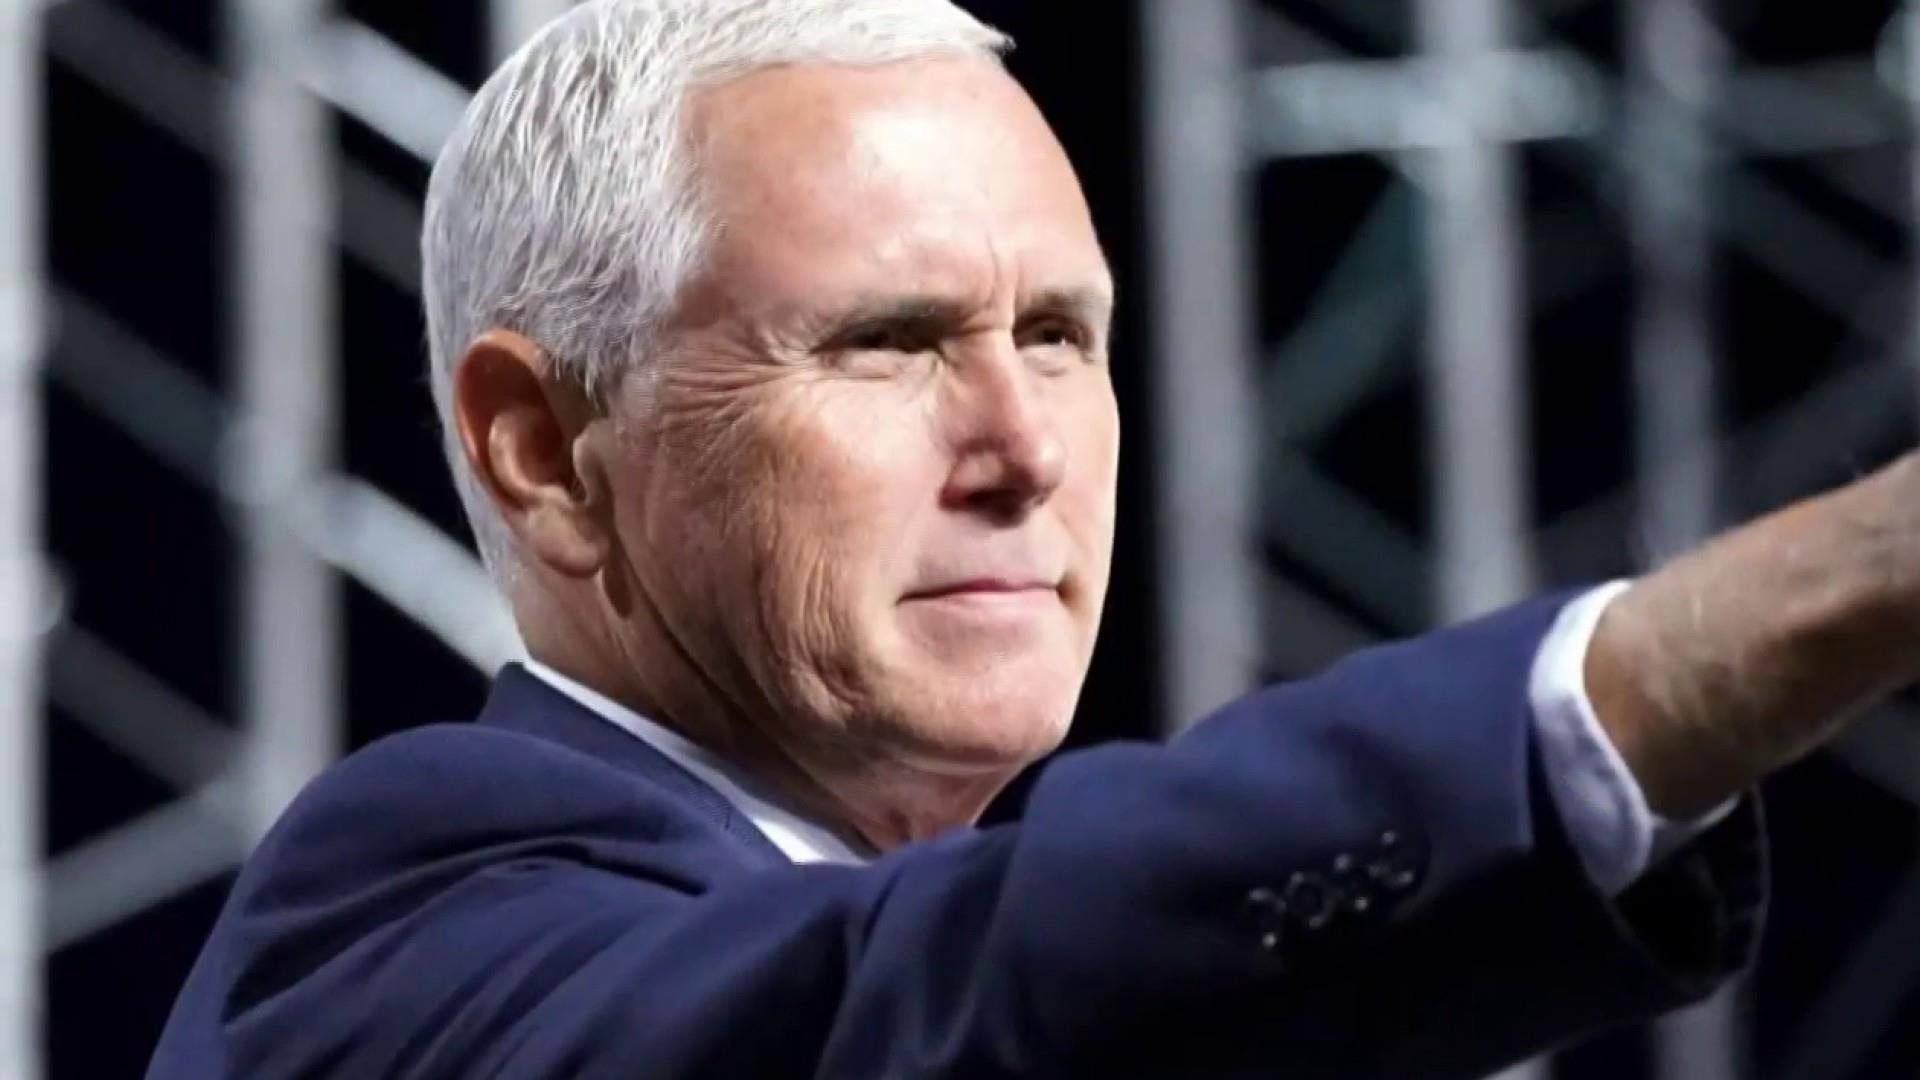 Vice President Pence's defense on the growing Ukraine scandal